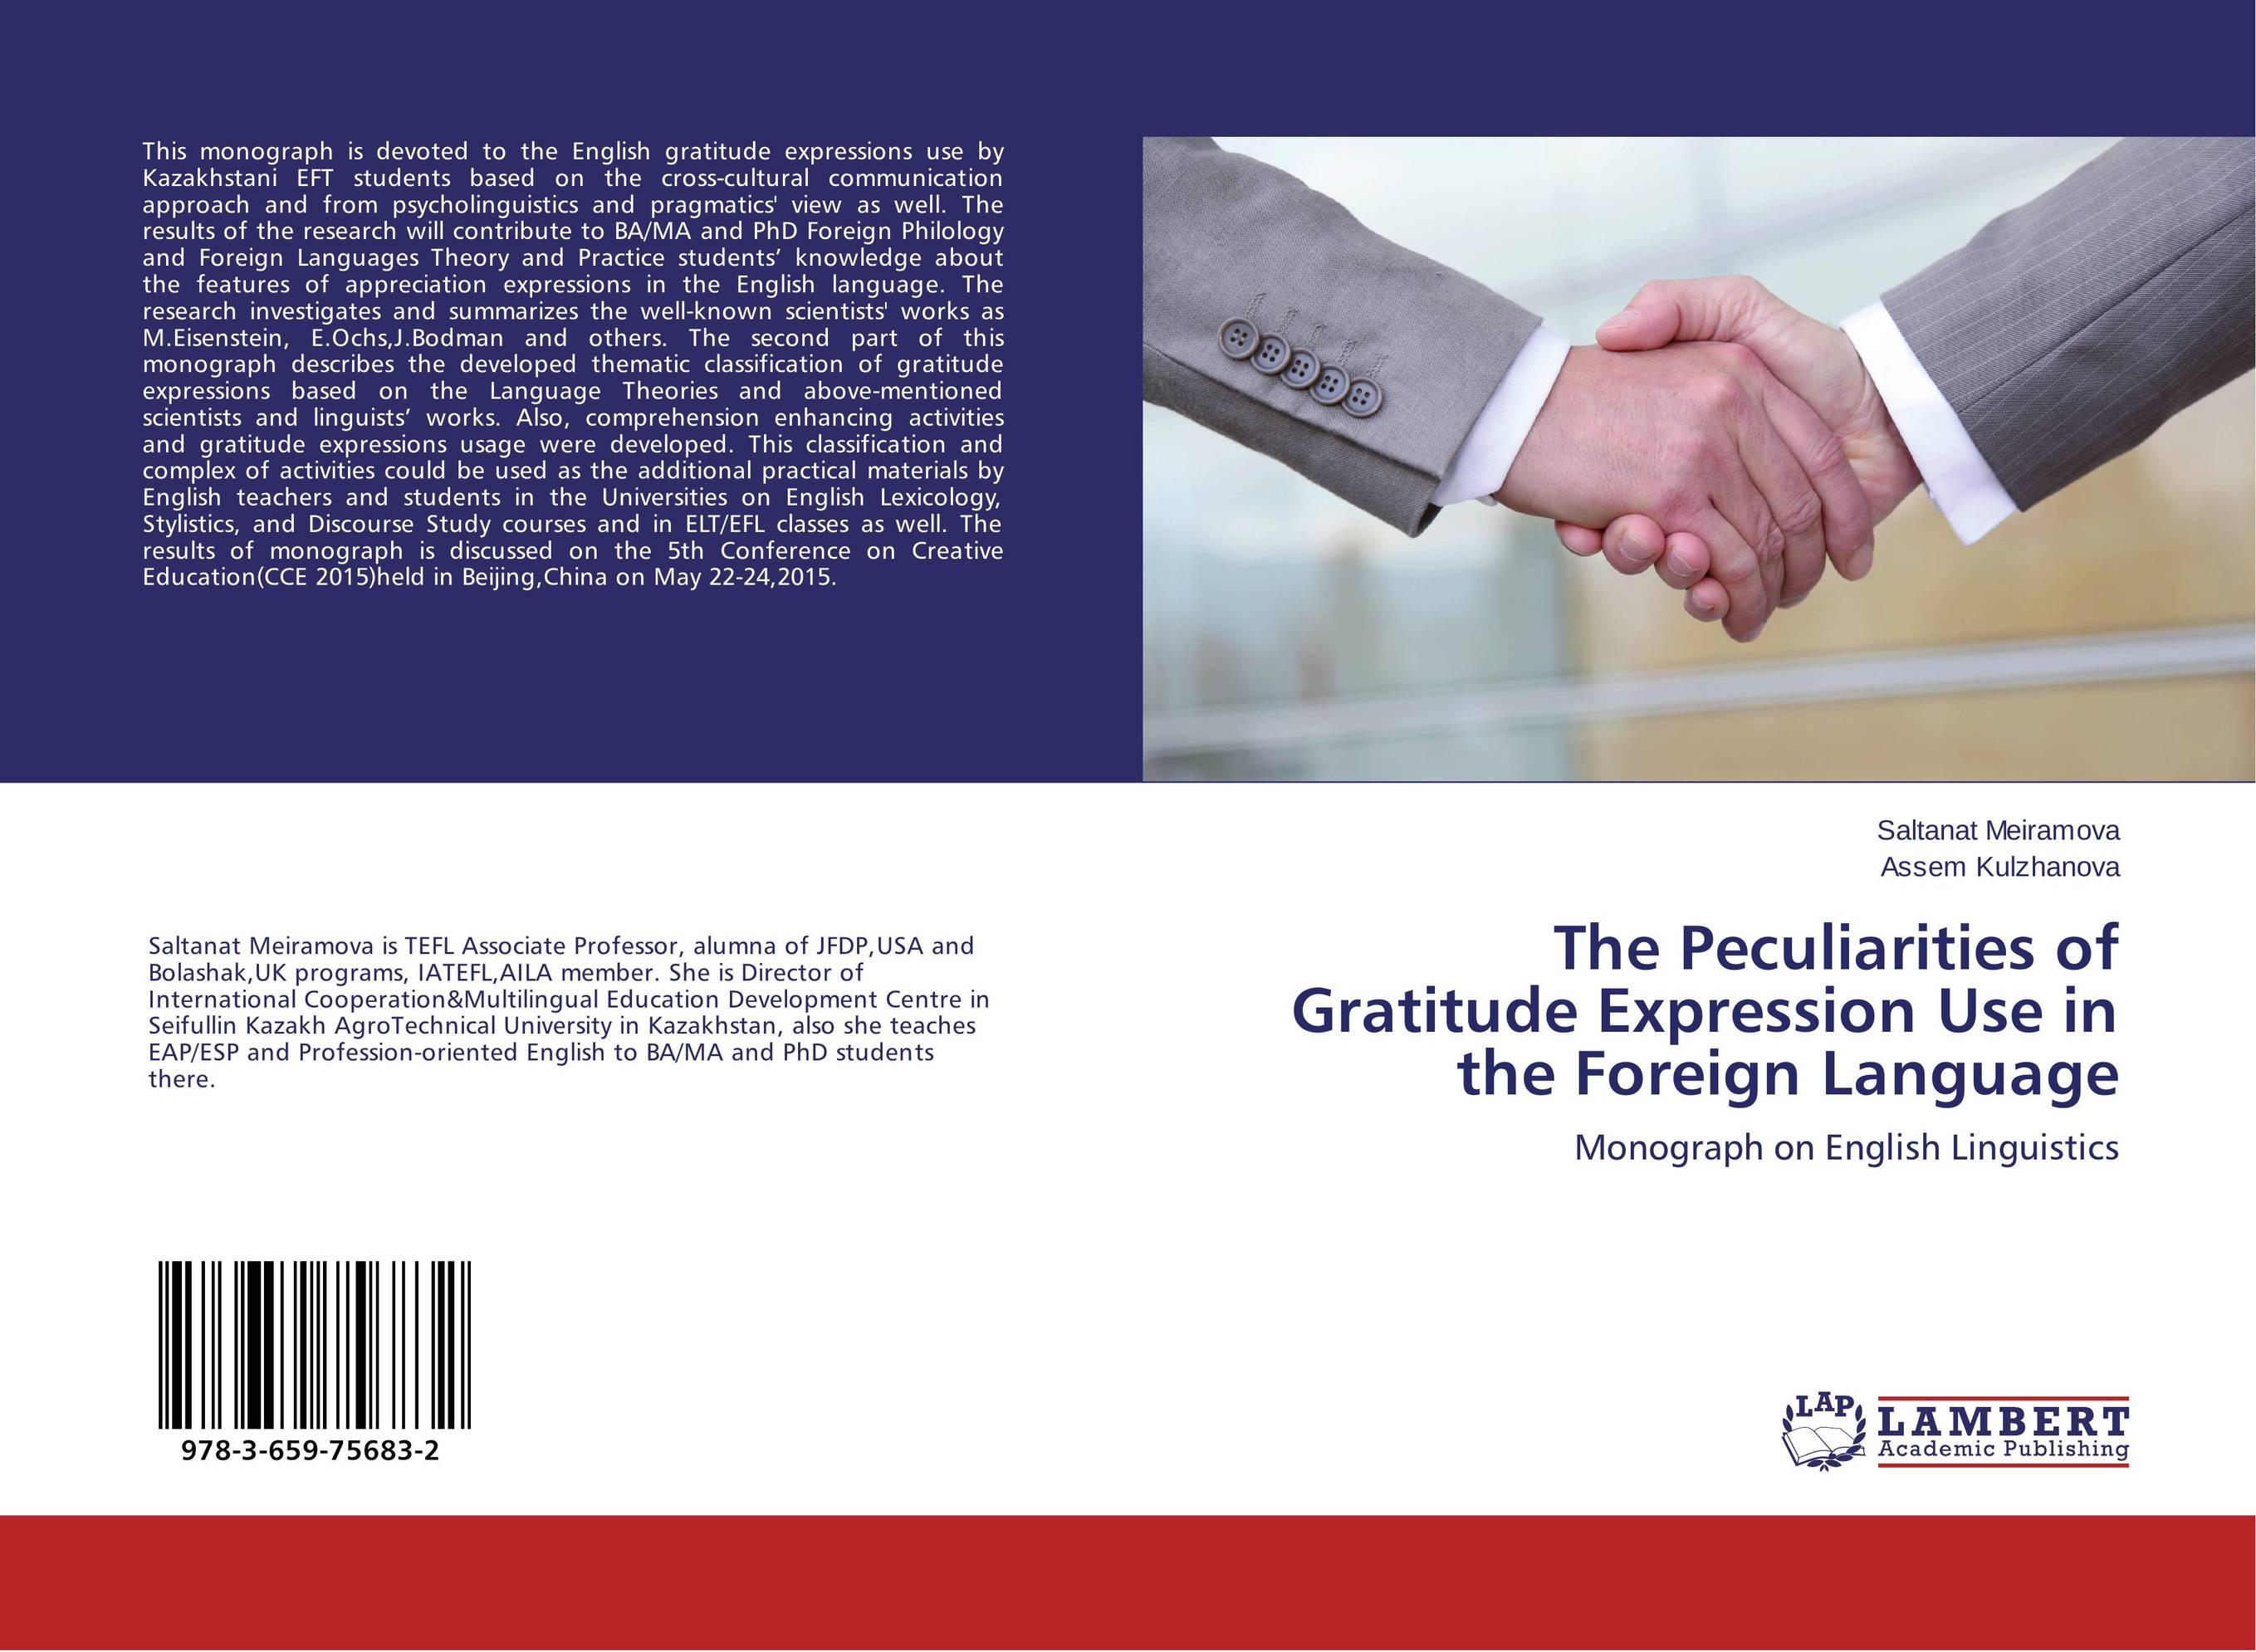 The Peculiarities of Gratitude Expression Use in the Foreign Language sports law in russia monograph